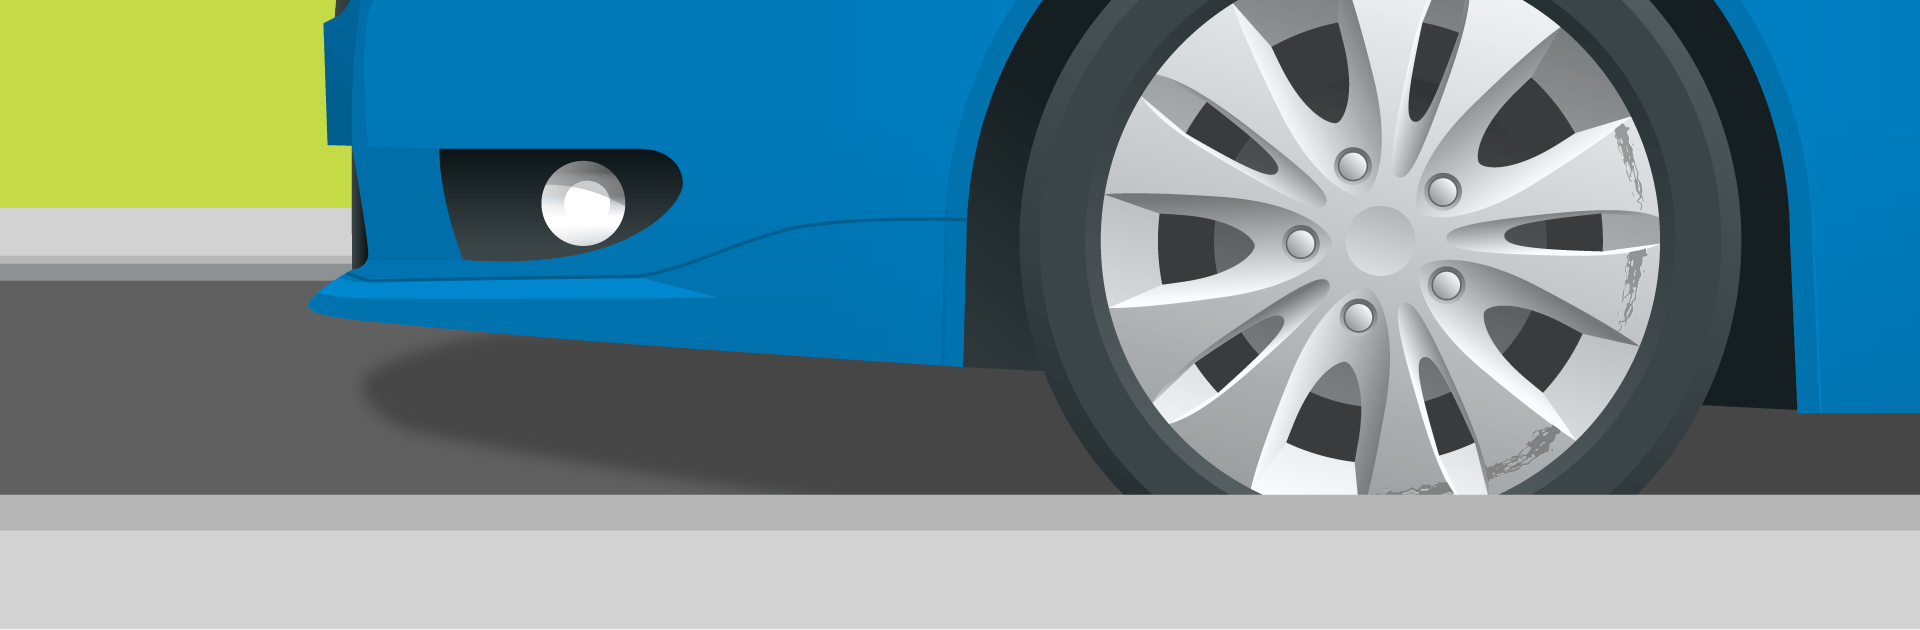 tidyalloys.com header banner image 2 showing a damaged alloy wheel